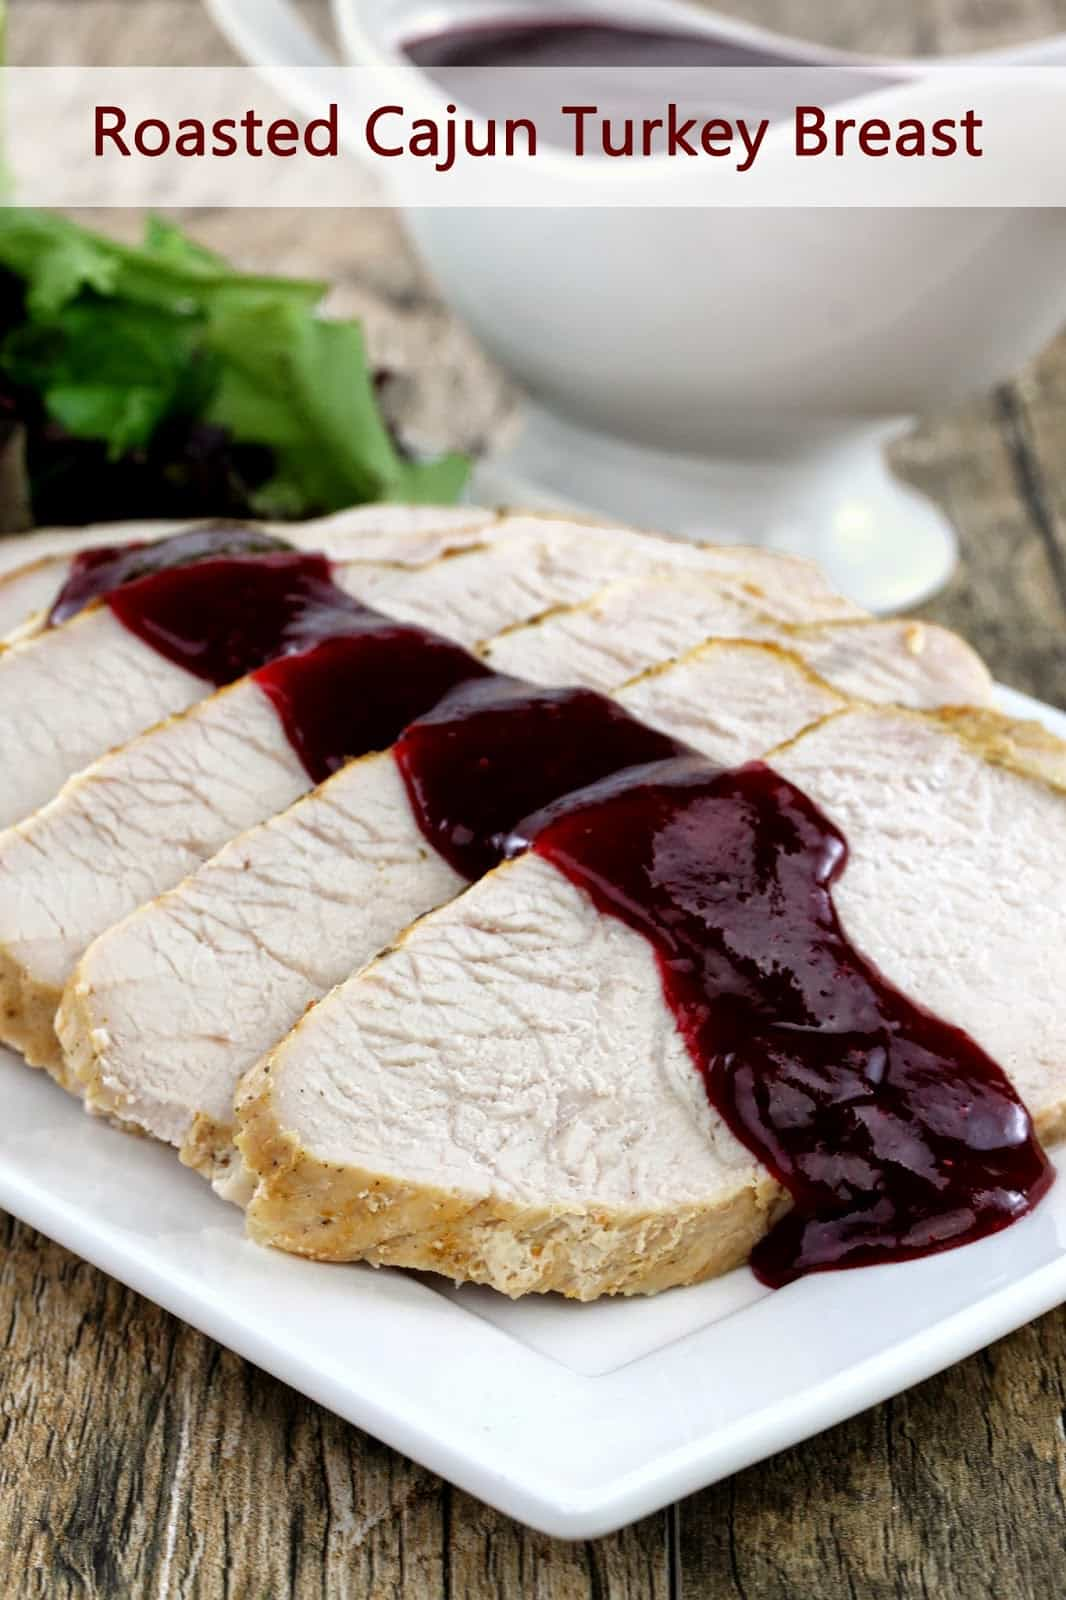 Slices of turkey breast drizzled with cranberry sauce